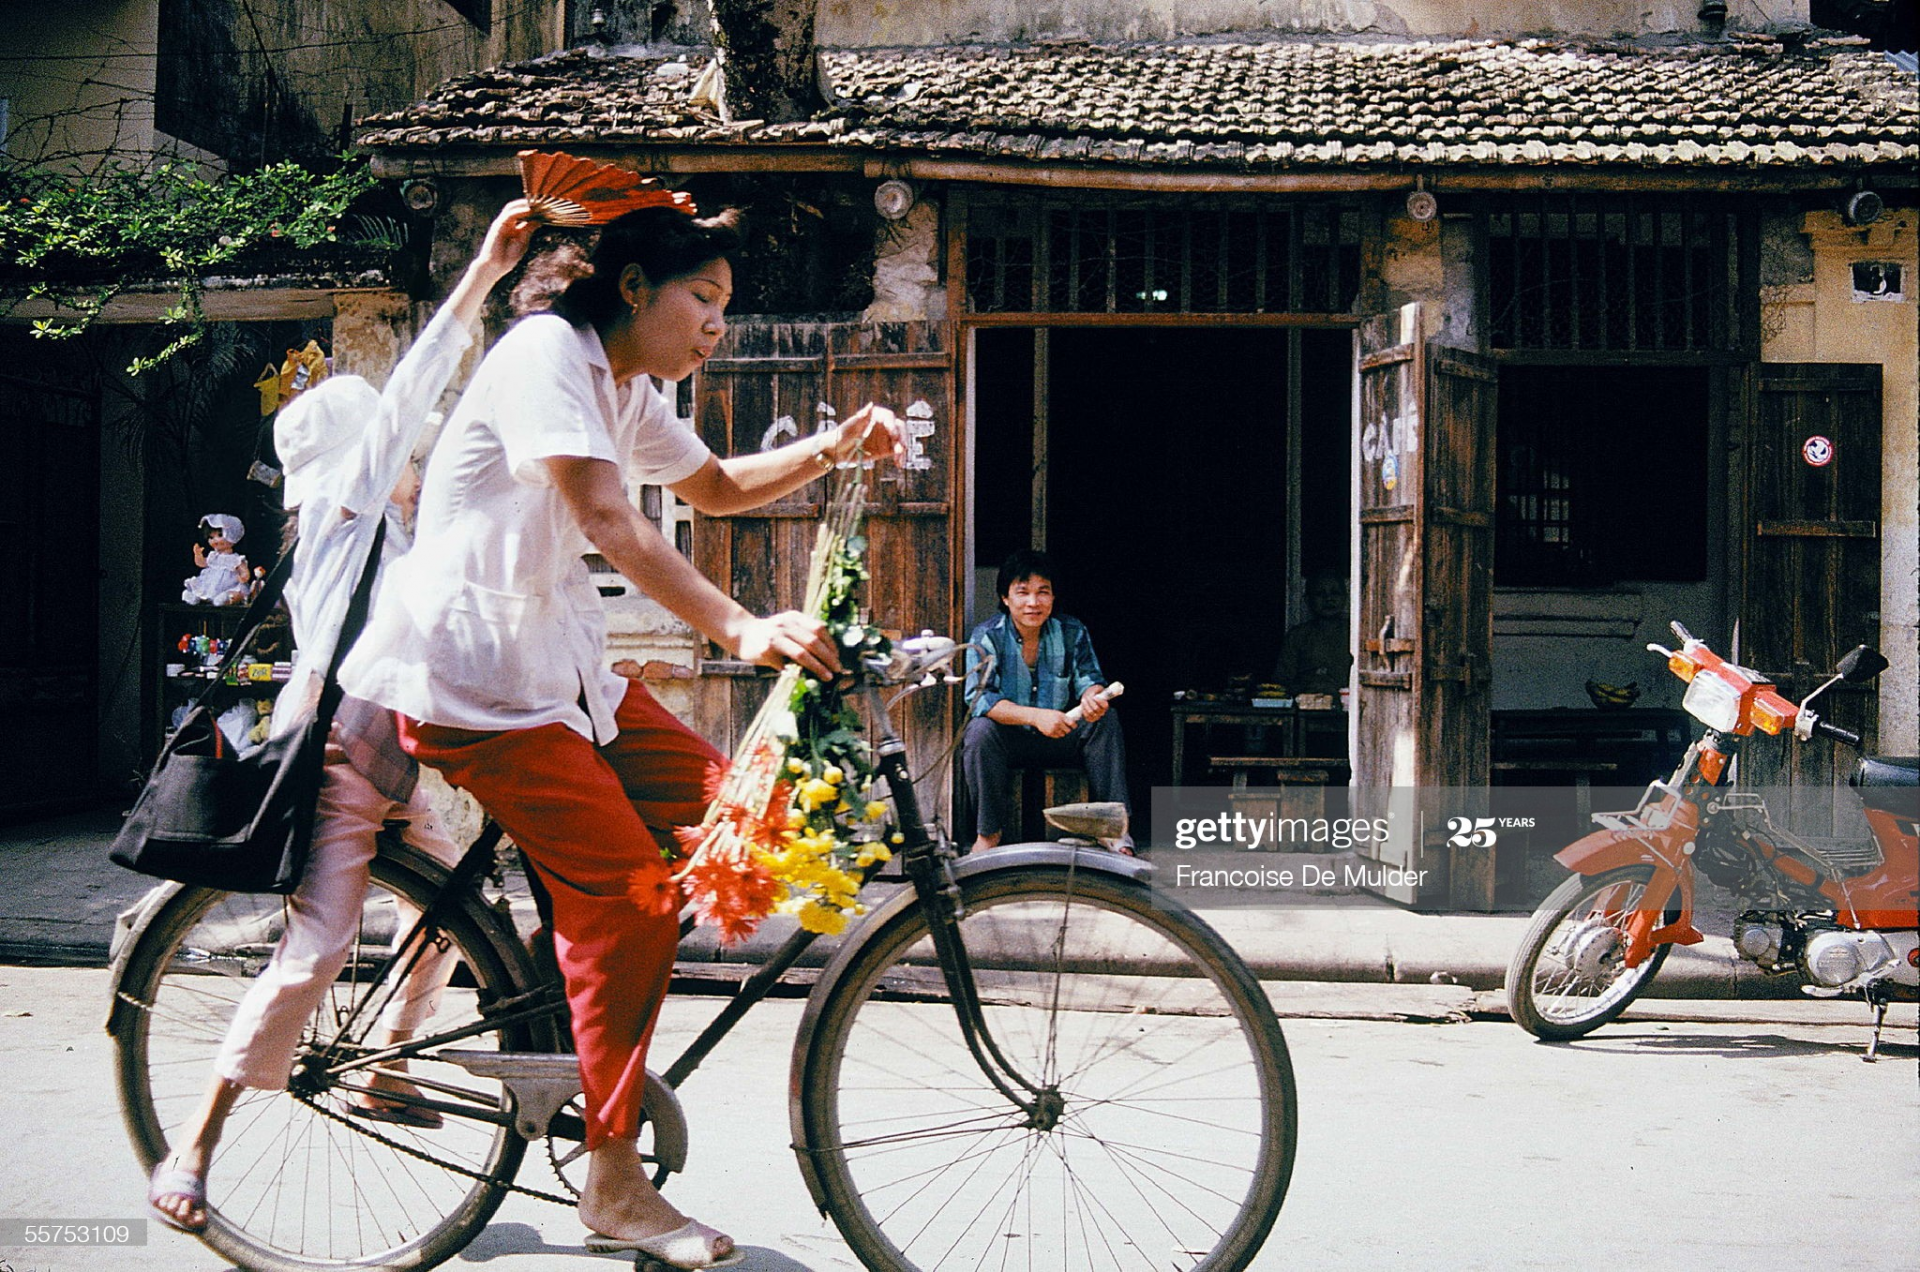 rustic life of hanoi in 1989 through french journalists lens